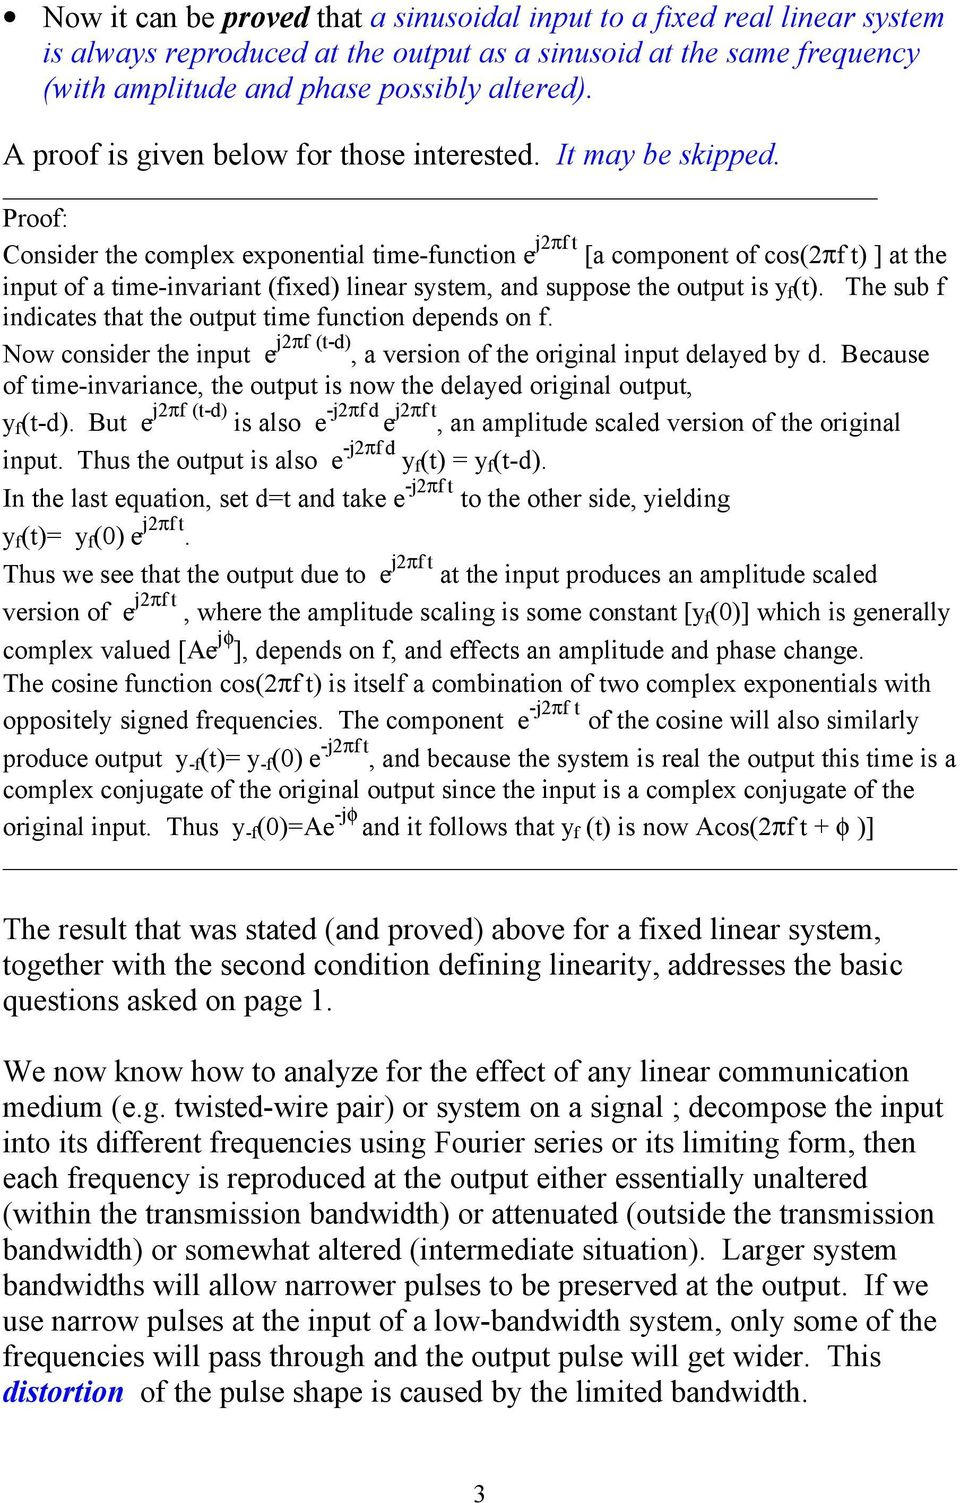 Proof: Consider the complex exponential time-function e j2πf t [a component of cos(2πf t) ] at the input of a time-invariant (fixed) linear system, and suppose the output is y f (t).